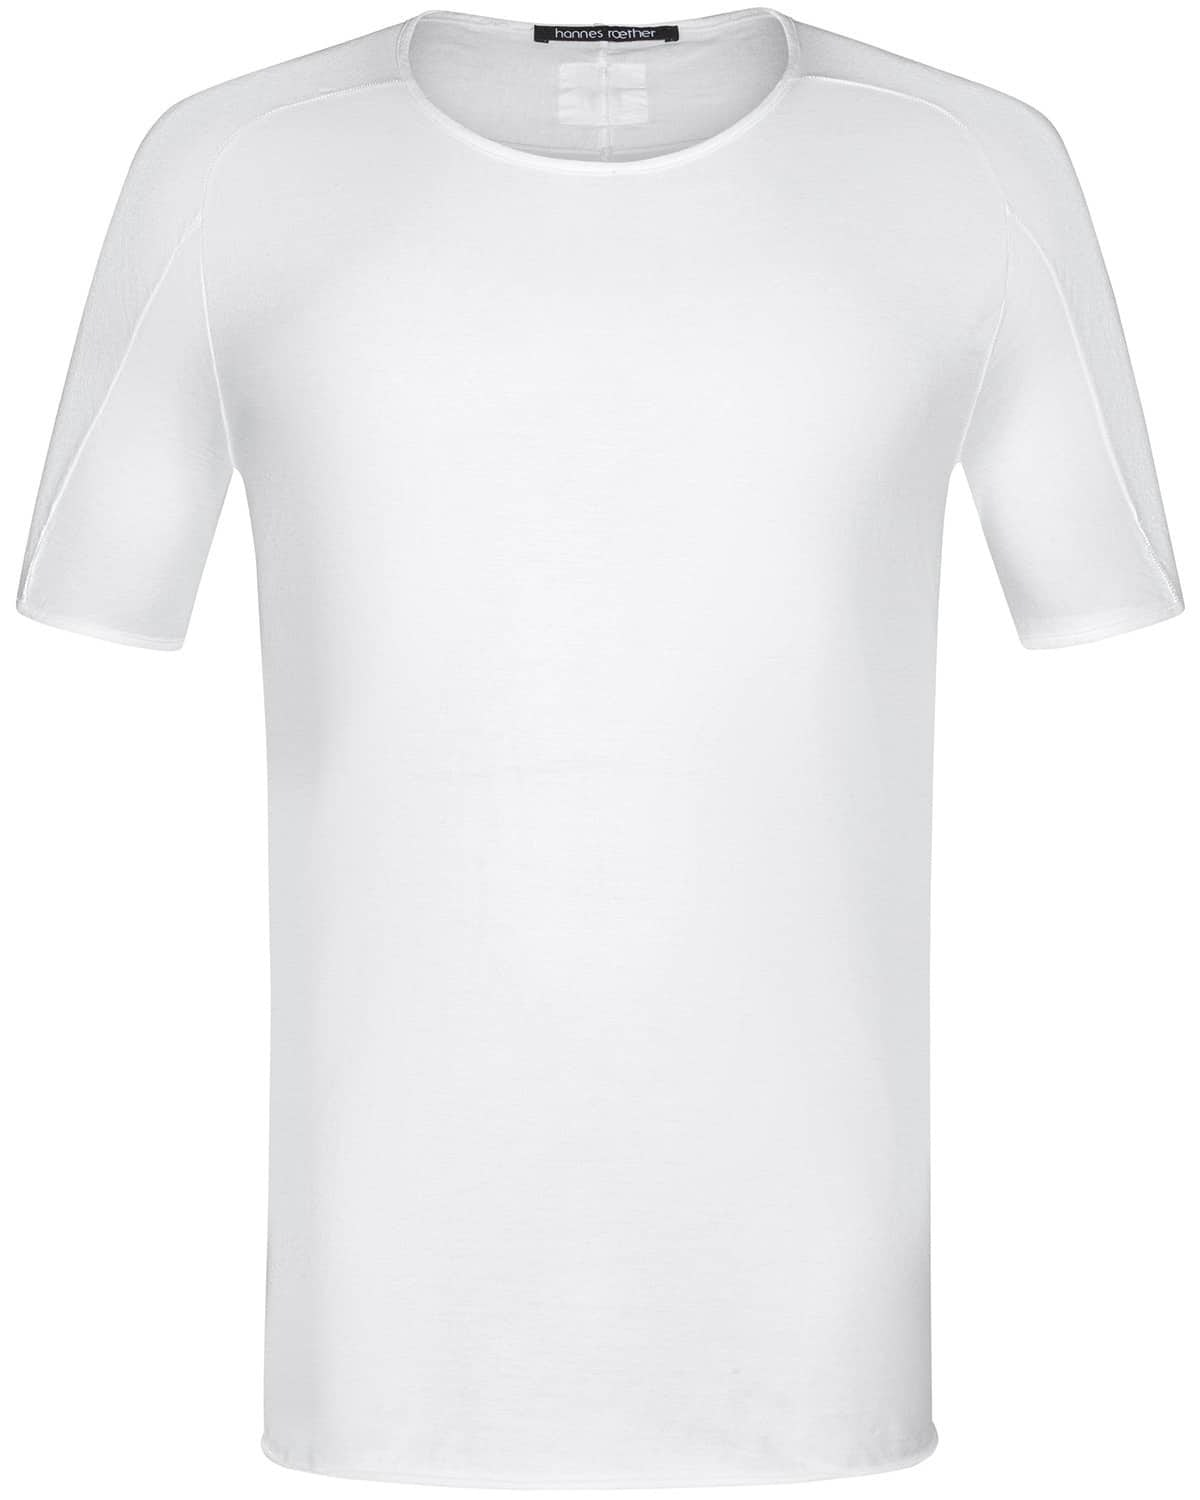 label to watch hannes roether!  t shirt, shirt, hannes roether, wei�, white, lodenfrey, menswear